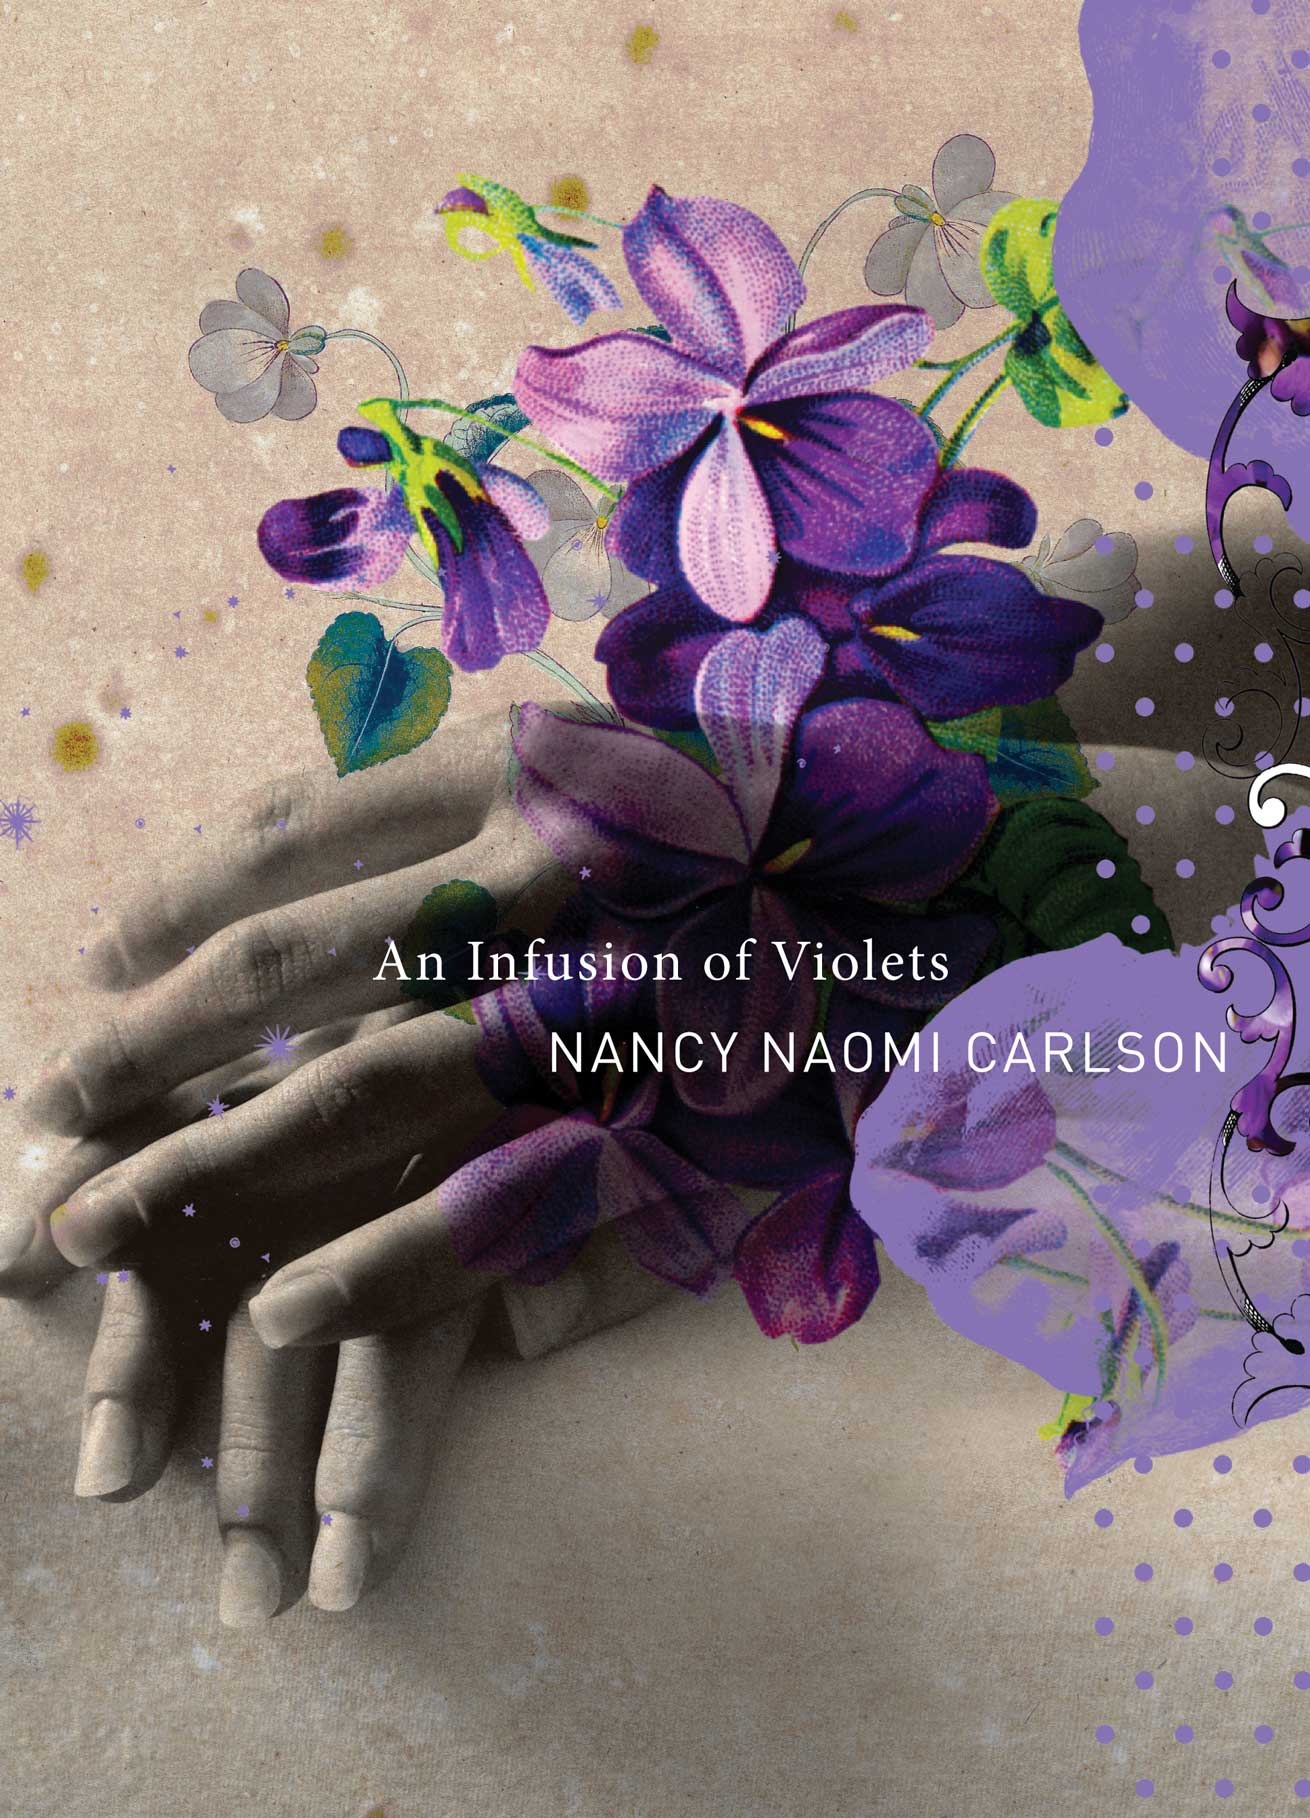 An Infusion of Violets by Nancy Naomi Carlson   Seagull Books